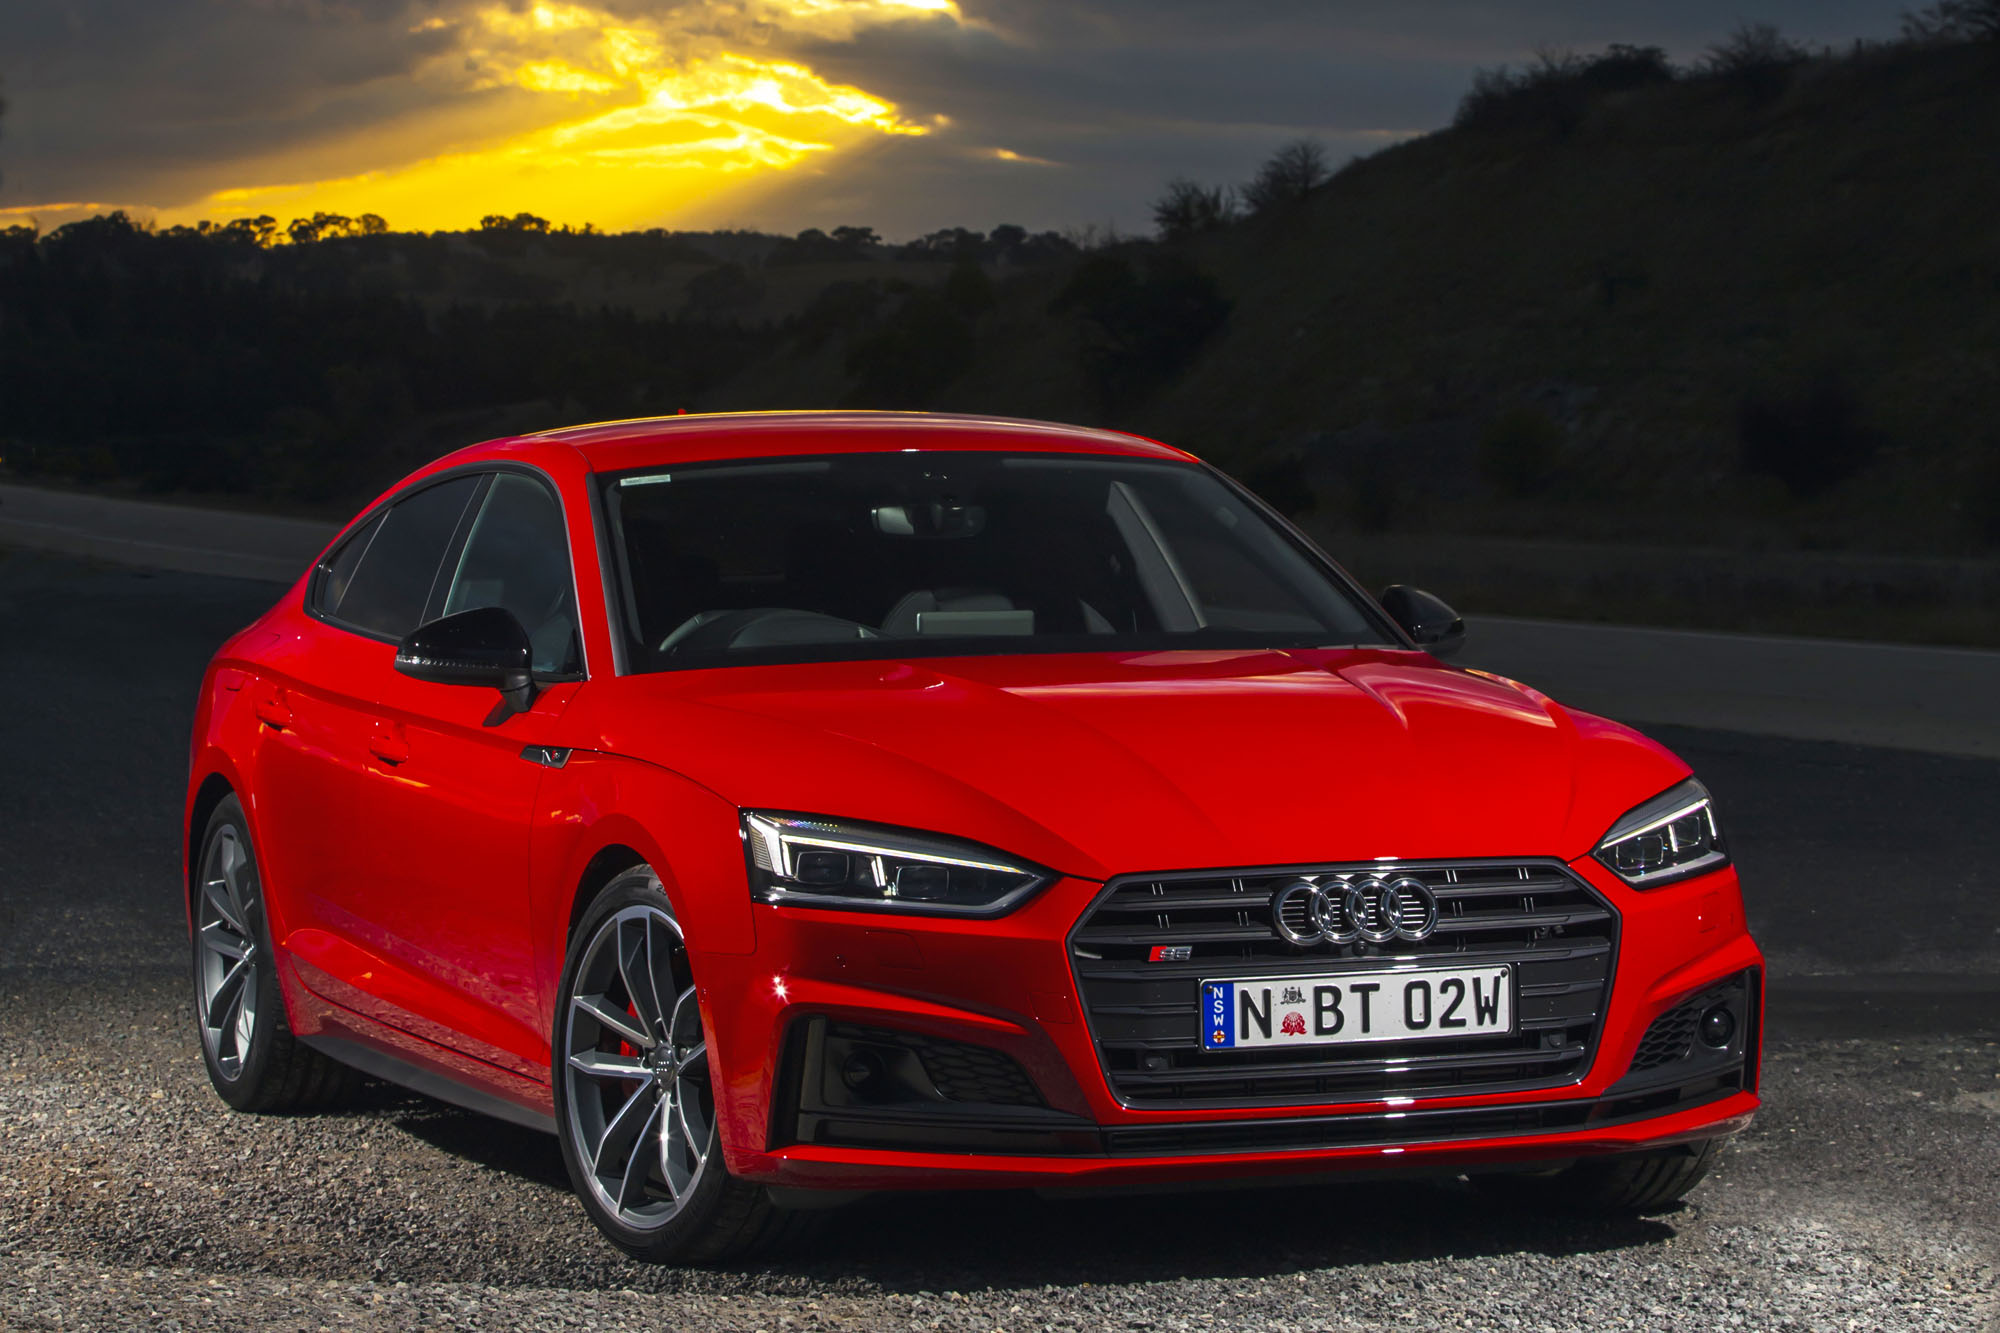 2017 Audi A5 Sportback S5 Sportback Pricing And Specs New Range Brings Faster Hero Model